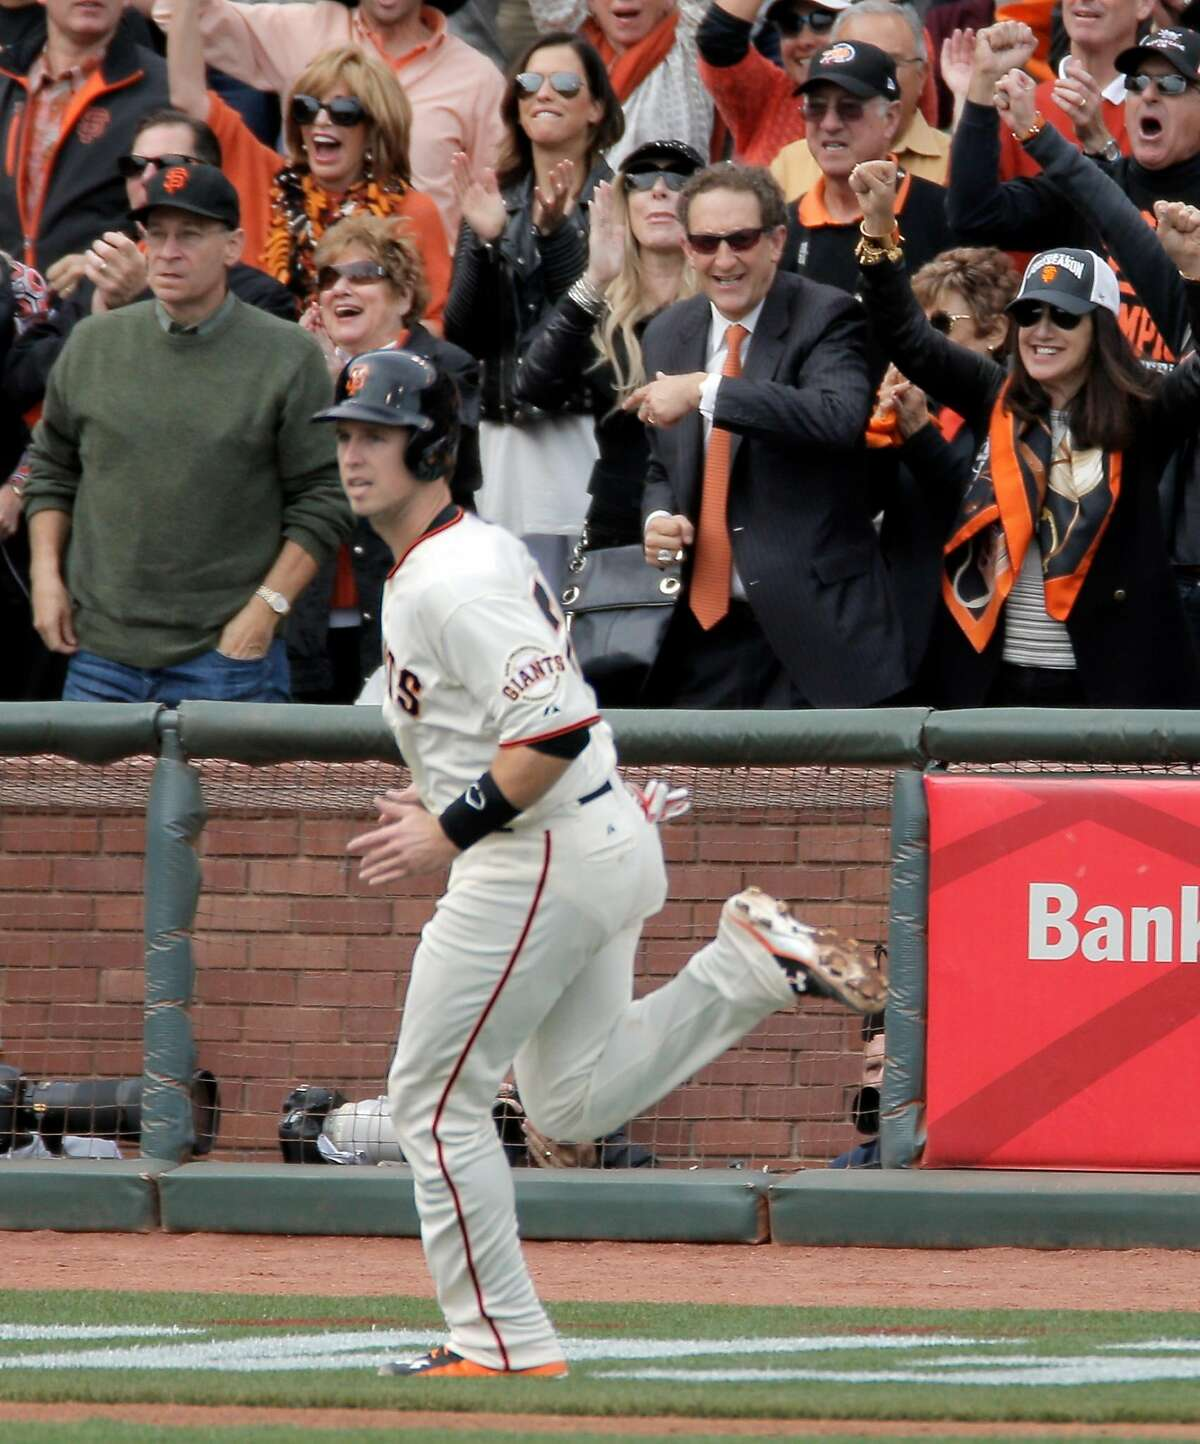 Larry Baer smiles as Giants Buster Posey scored in the first inning on a Hunter Pence double during Game 3 of the NLCS at AT&T Park on Tuesday, Oct. 14, 2014 in San Francisco, Calif.